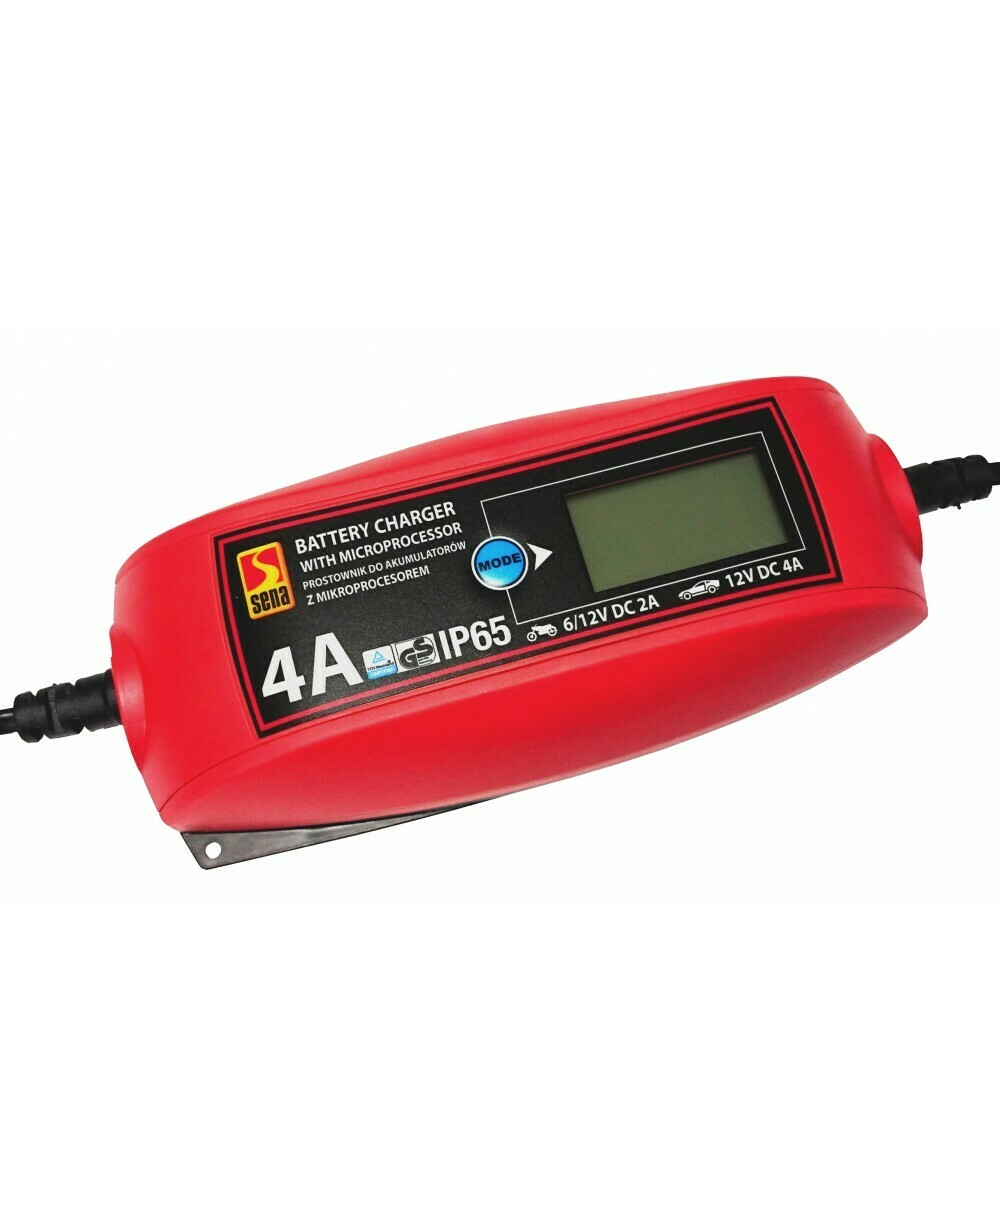 Battery charger with microprosessor 4A/LCD